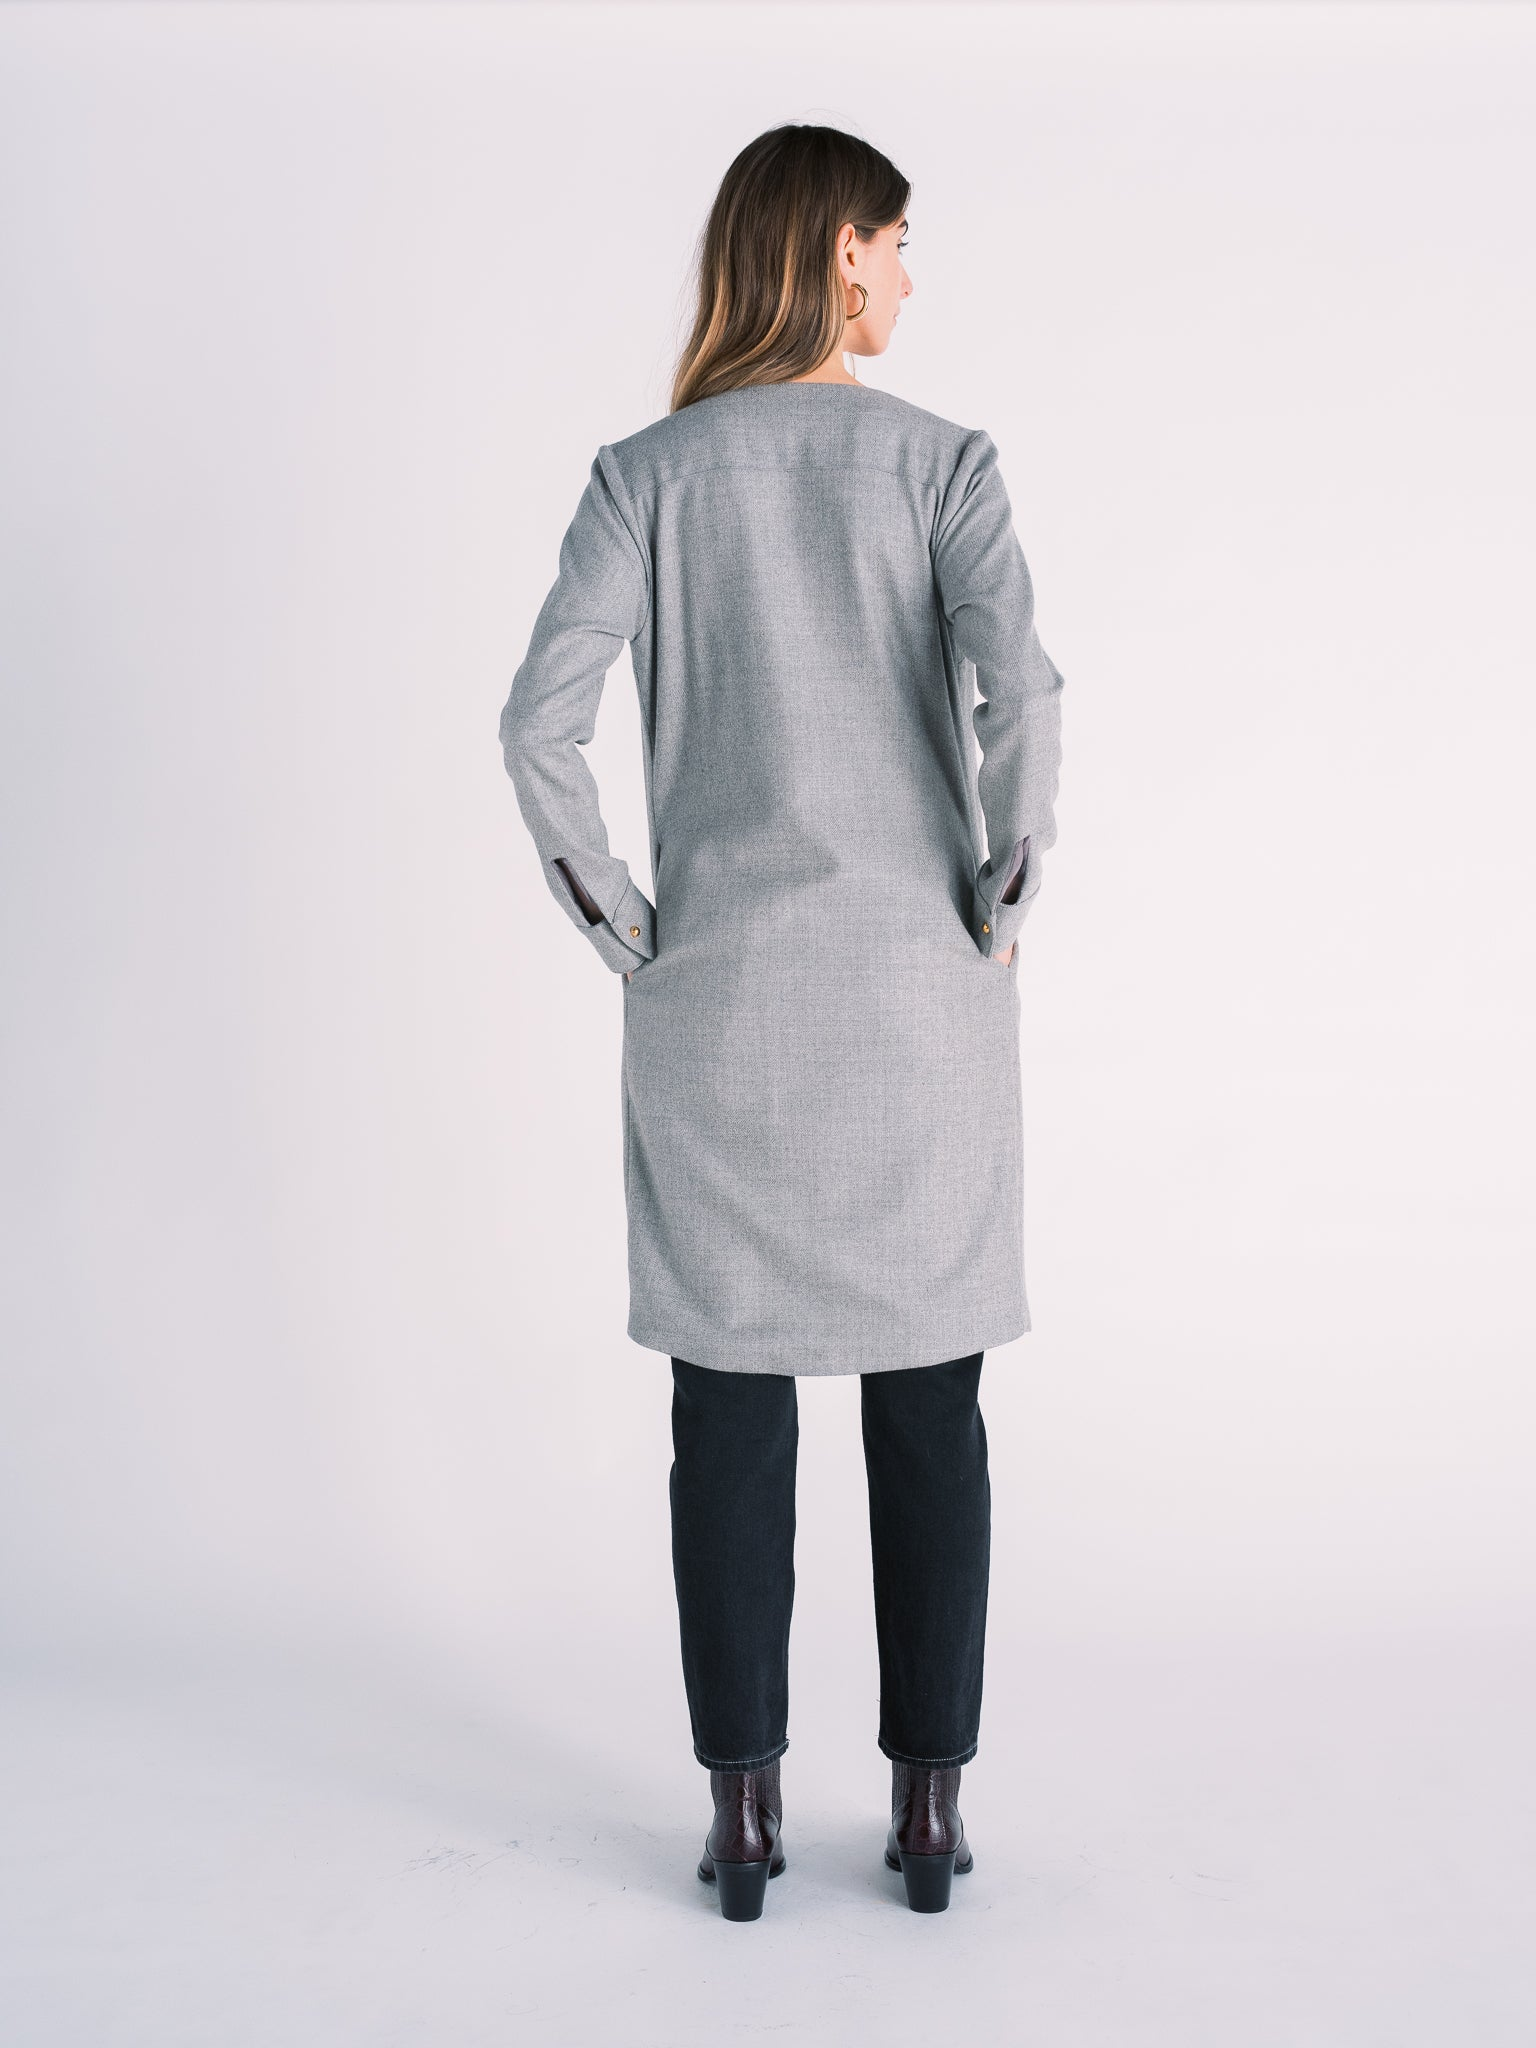 Vigor Coat in Heather Gray Wool